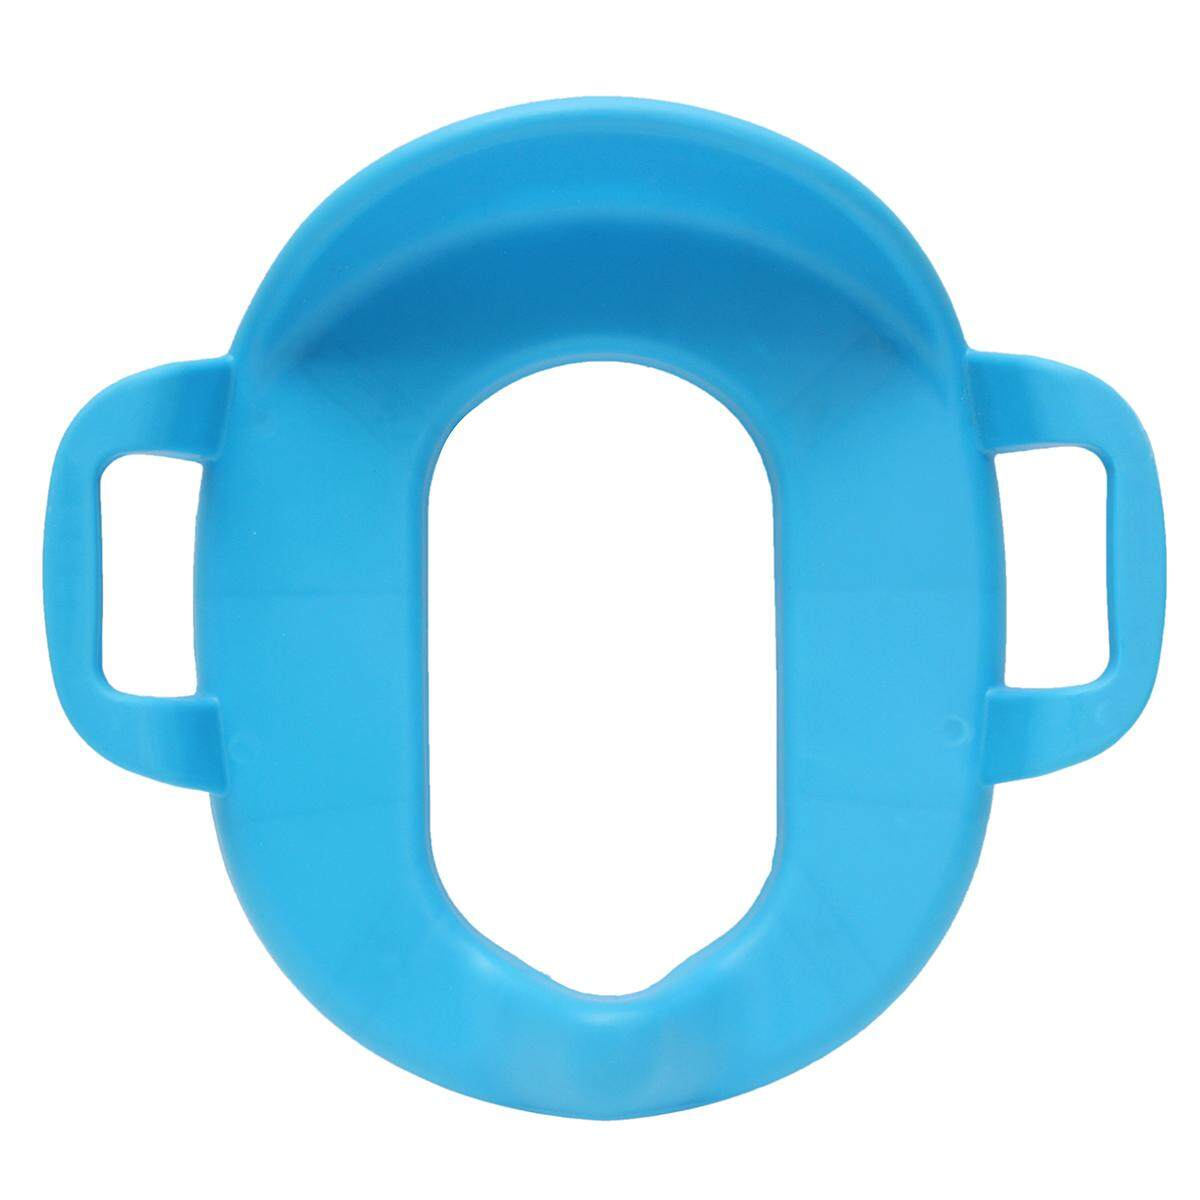 Children Potty Training Seat Kids Baby Toddler Handle Toilet Soft Pad Portable  Blue By Moonbeam.